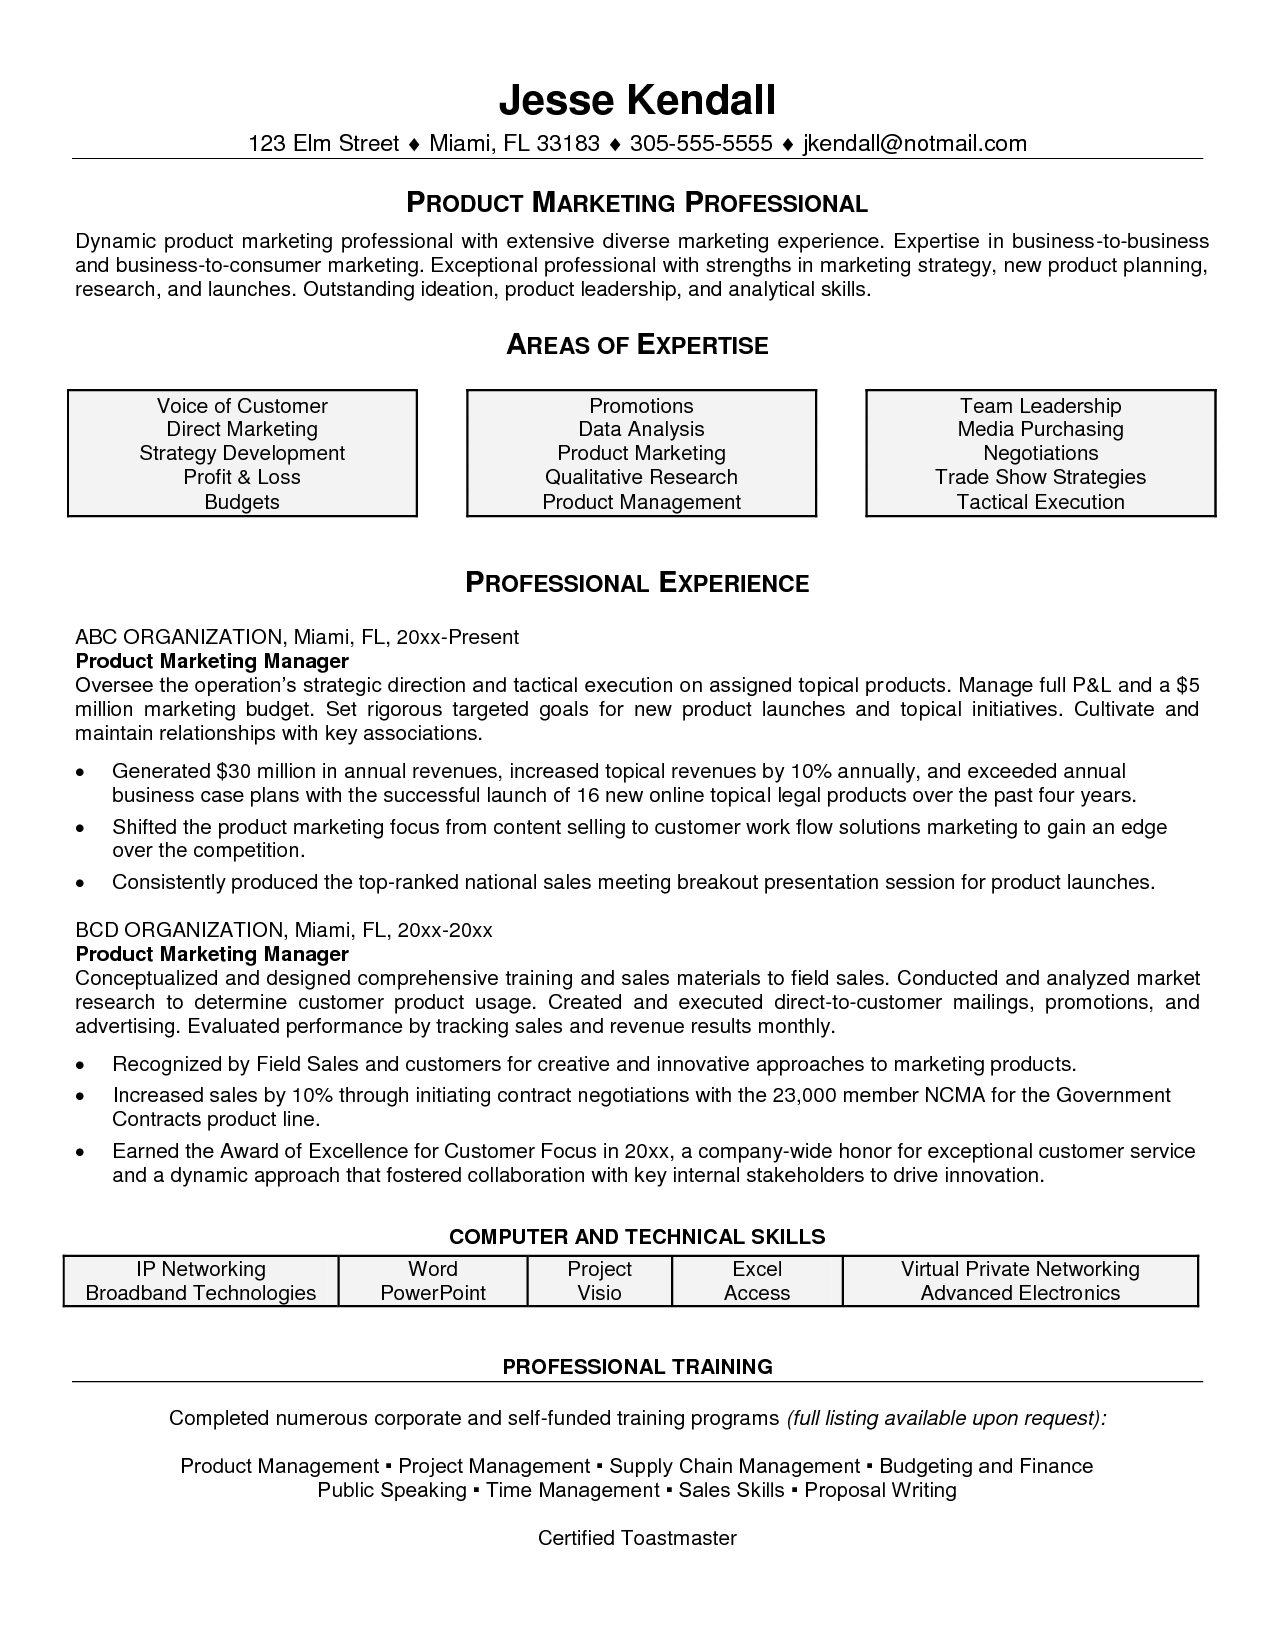 Technical Resume Template This Resume Example For A Marketing Project Manager Is Used To